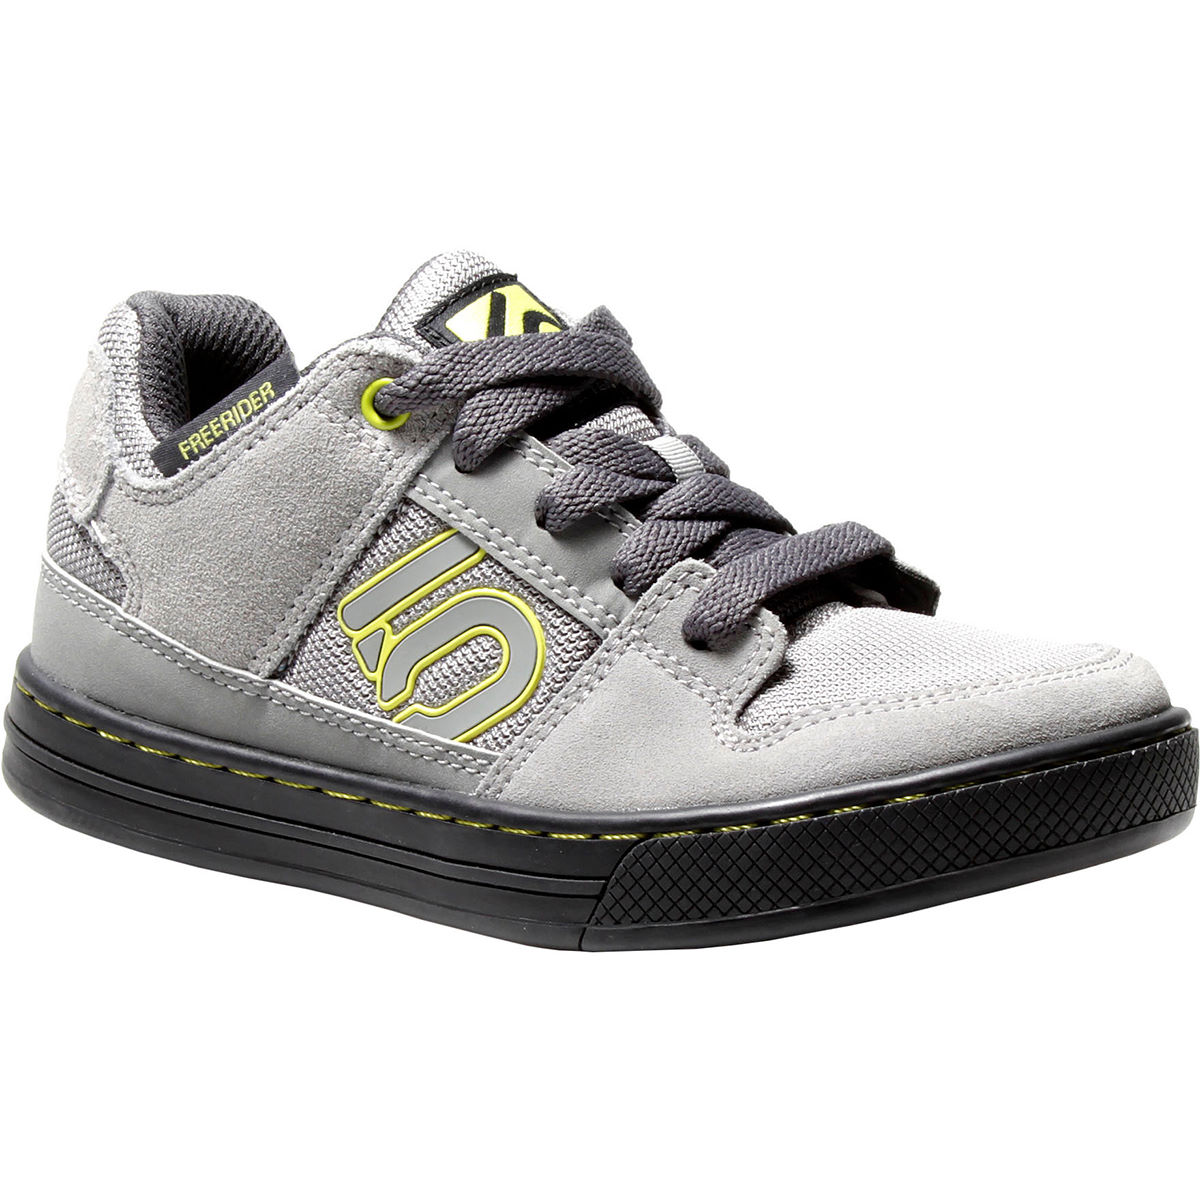 Chaussures VTT Enfant Five Ten Freerider - EU 29 Lime Punch - Grey